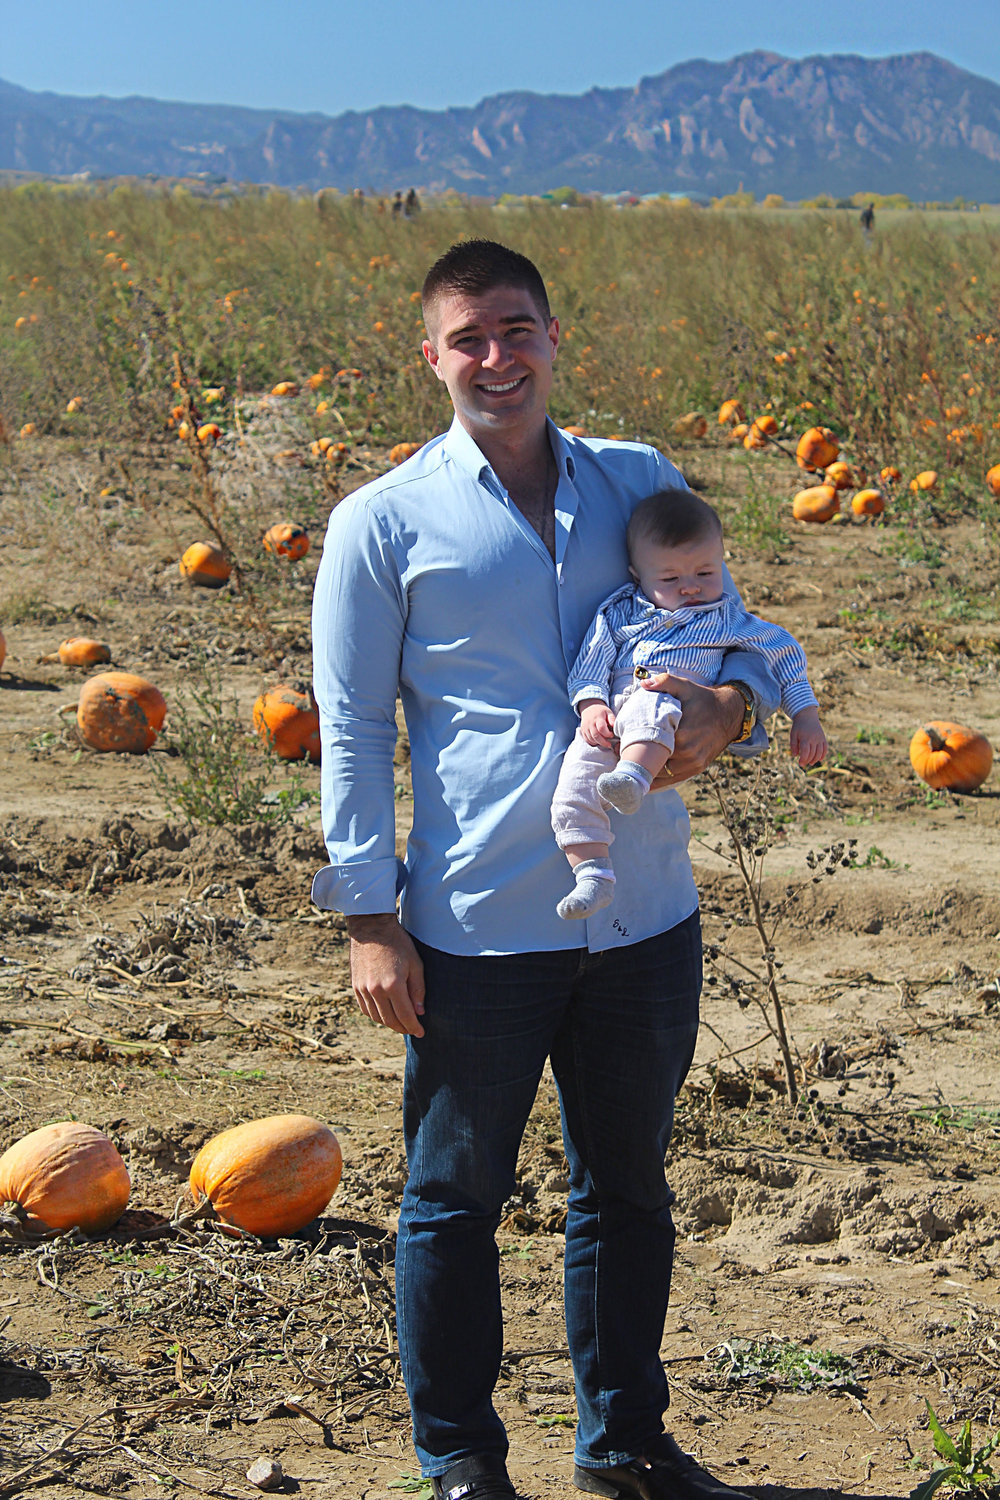 denver-pumpkin-patch.jpg